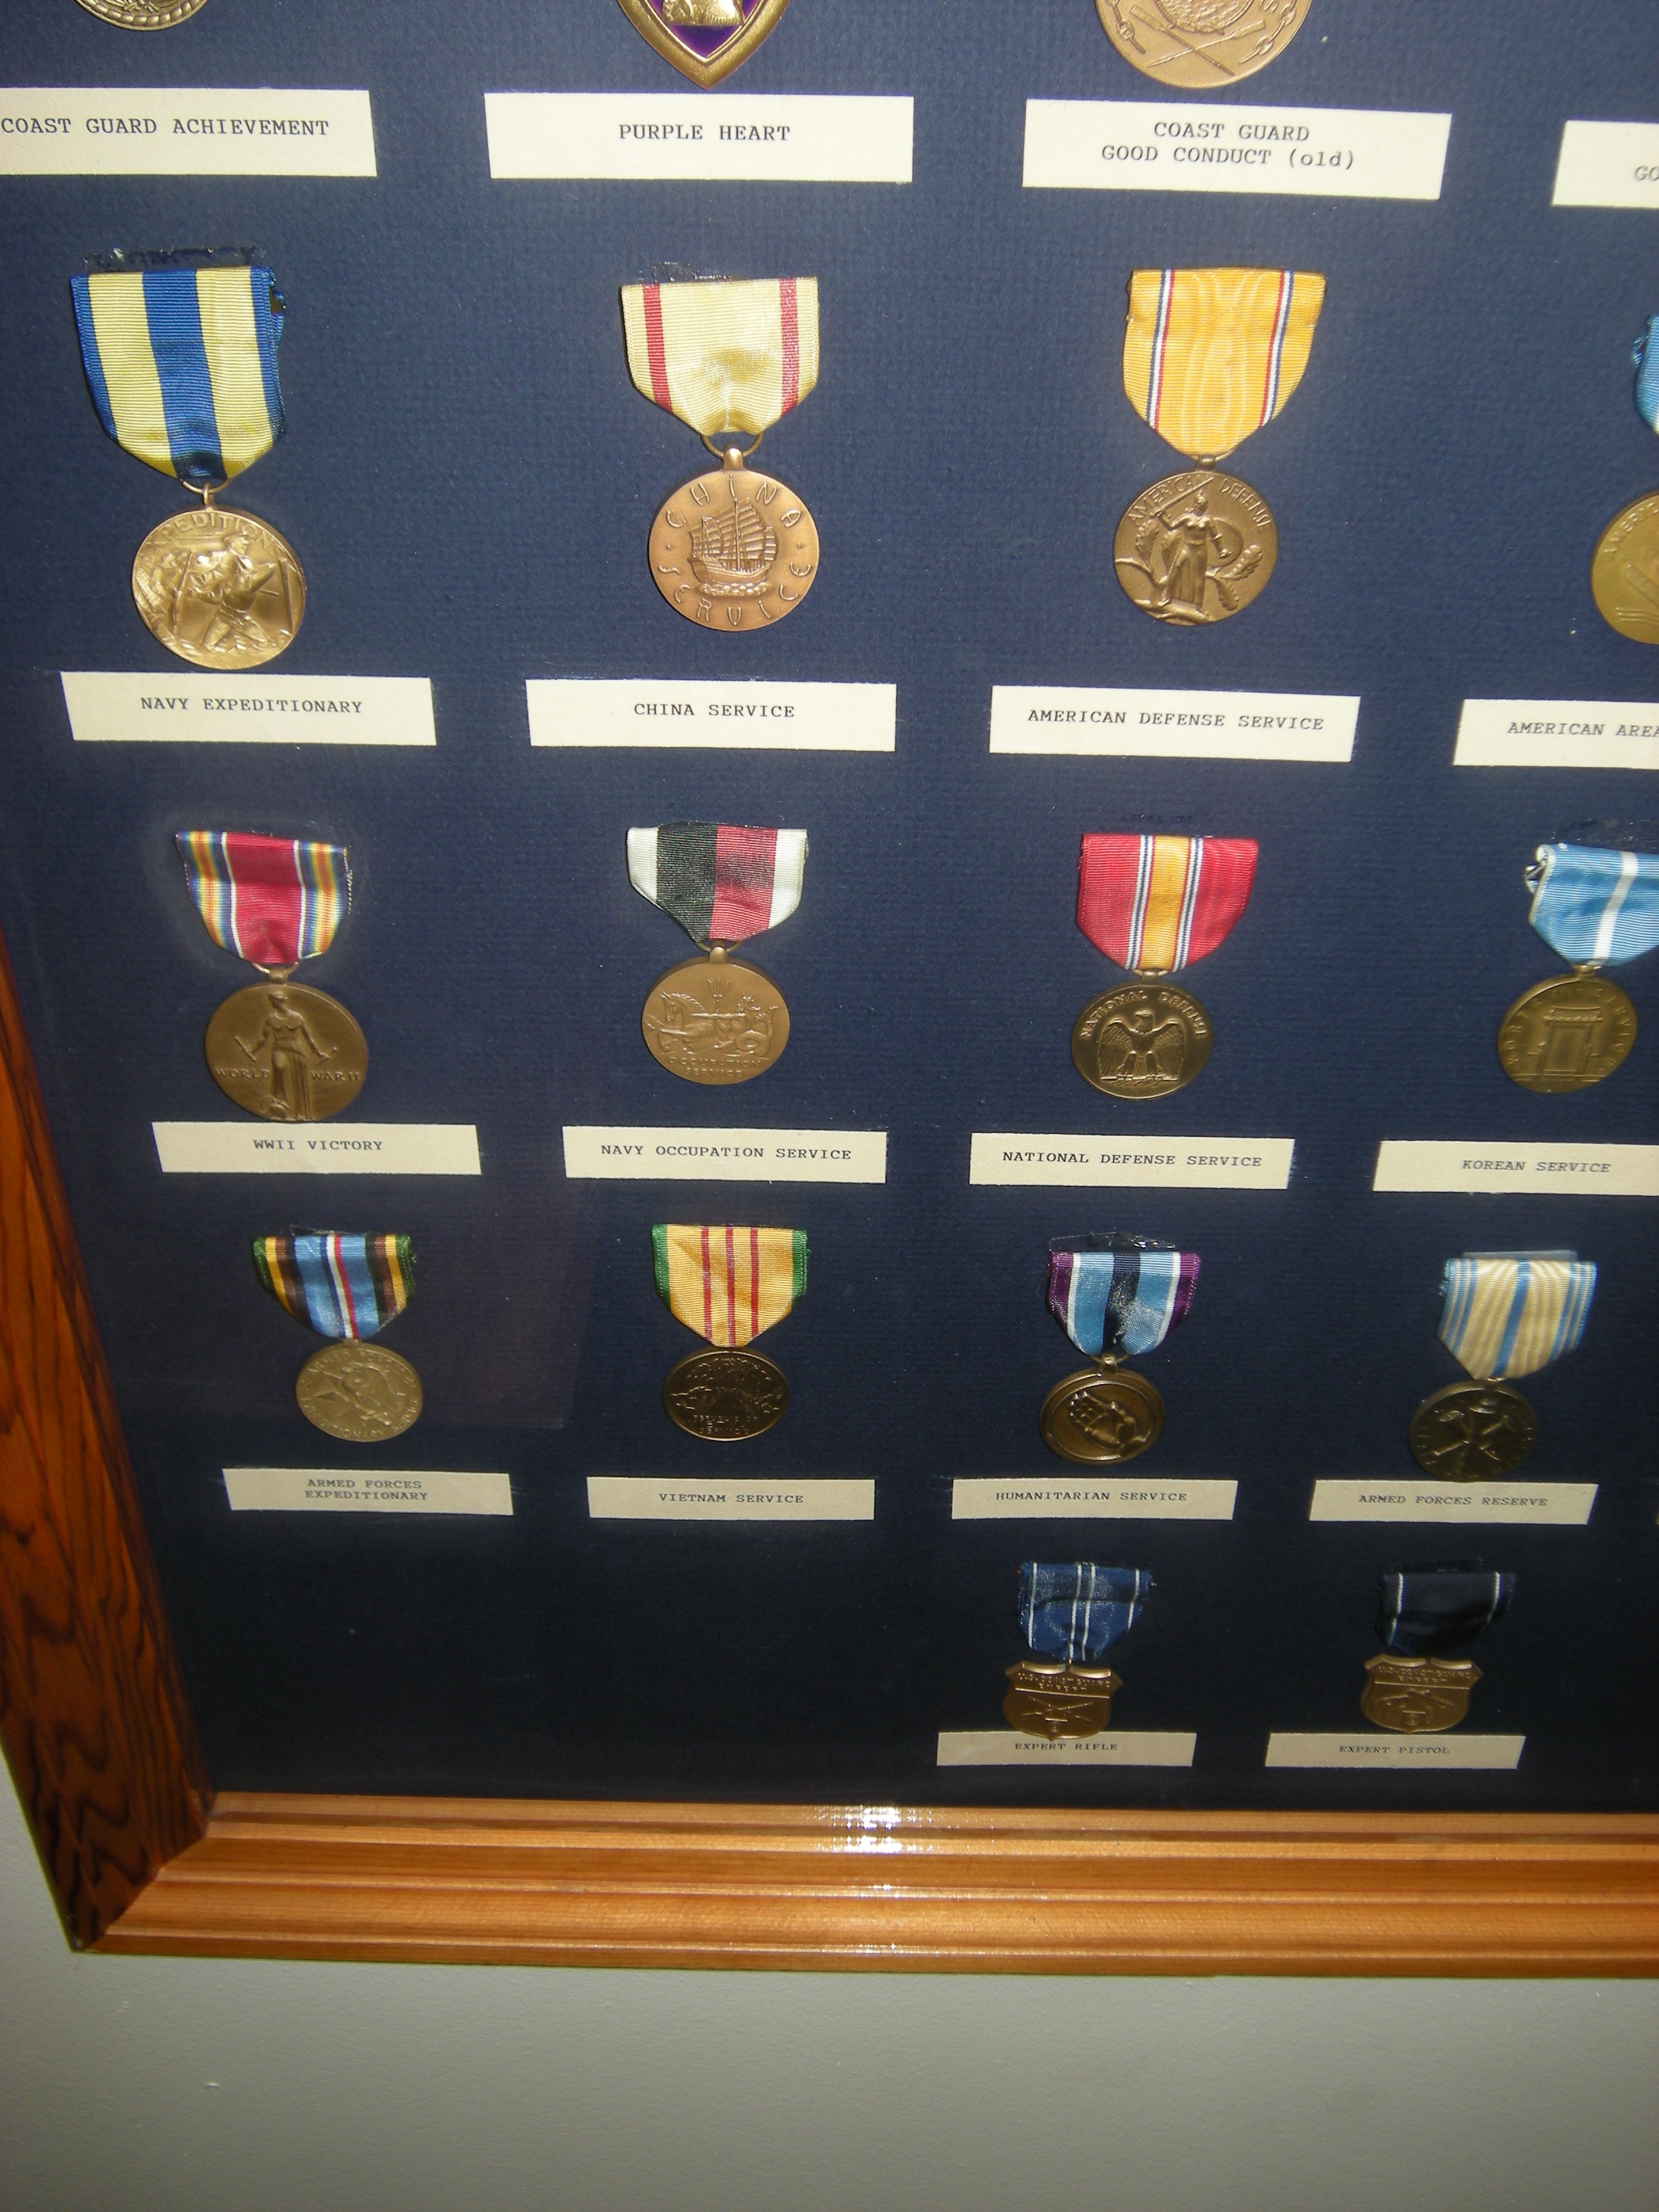 File:USCG medals 04 jpg - Wikimedia Commons